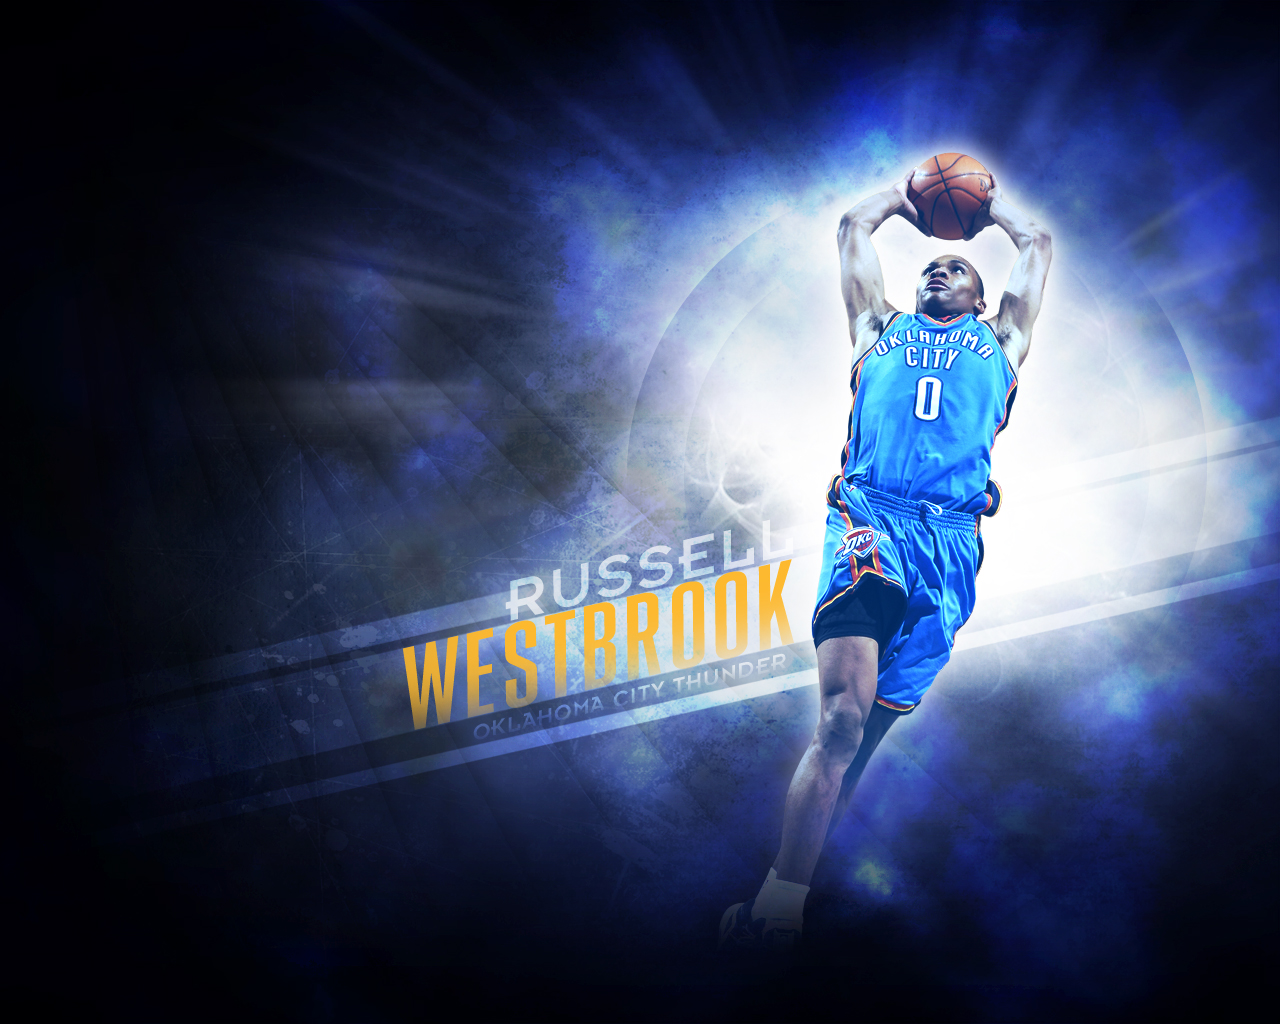 Russell Westbrook New Hd Wallpapers 2012 Its All About Basketball